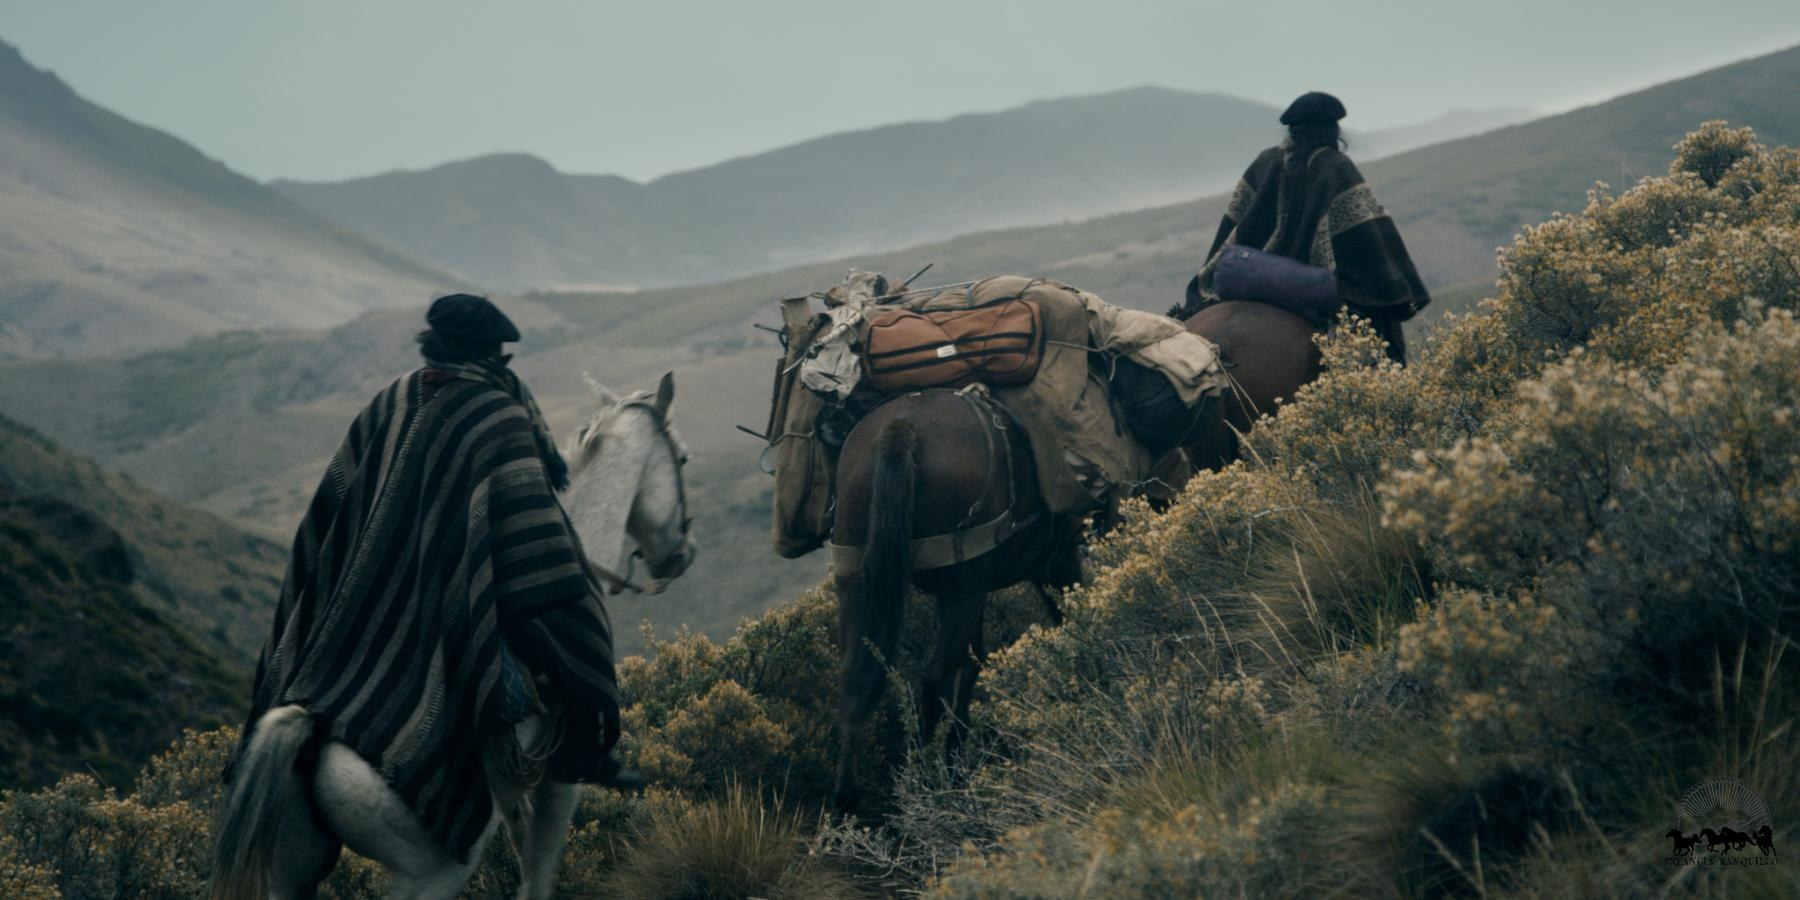 Two gauchos horse packing in the mountains of Patagonia Argentina at Estancia Ranquilco